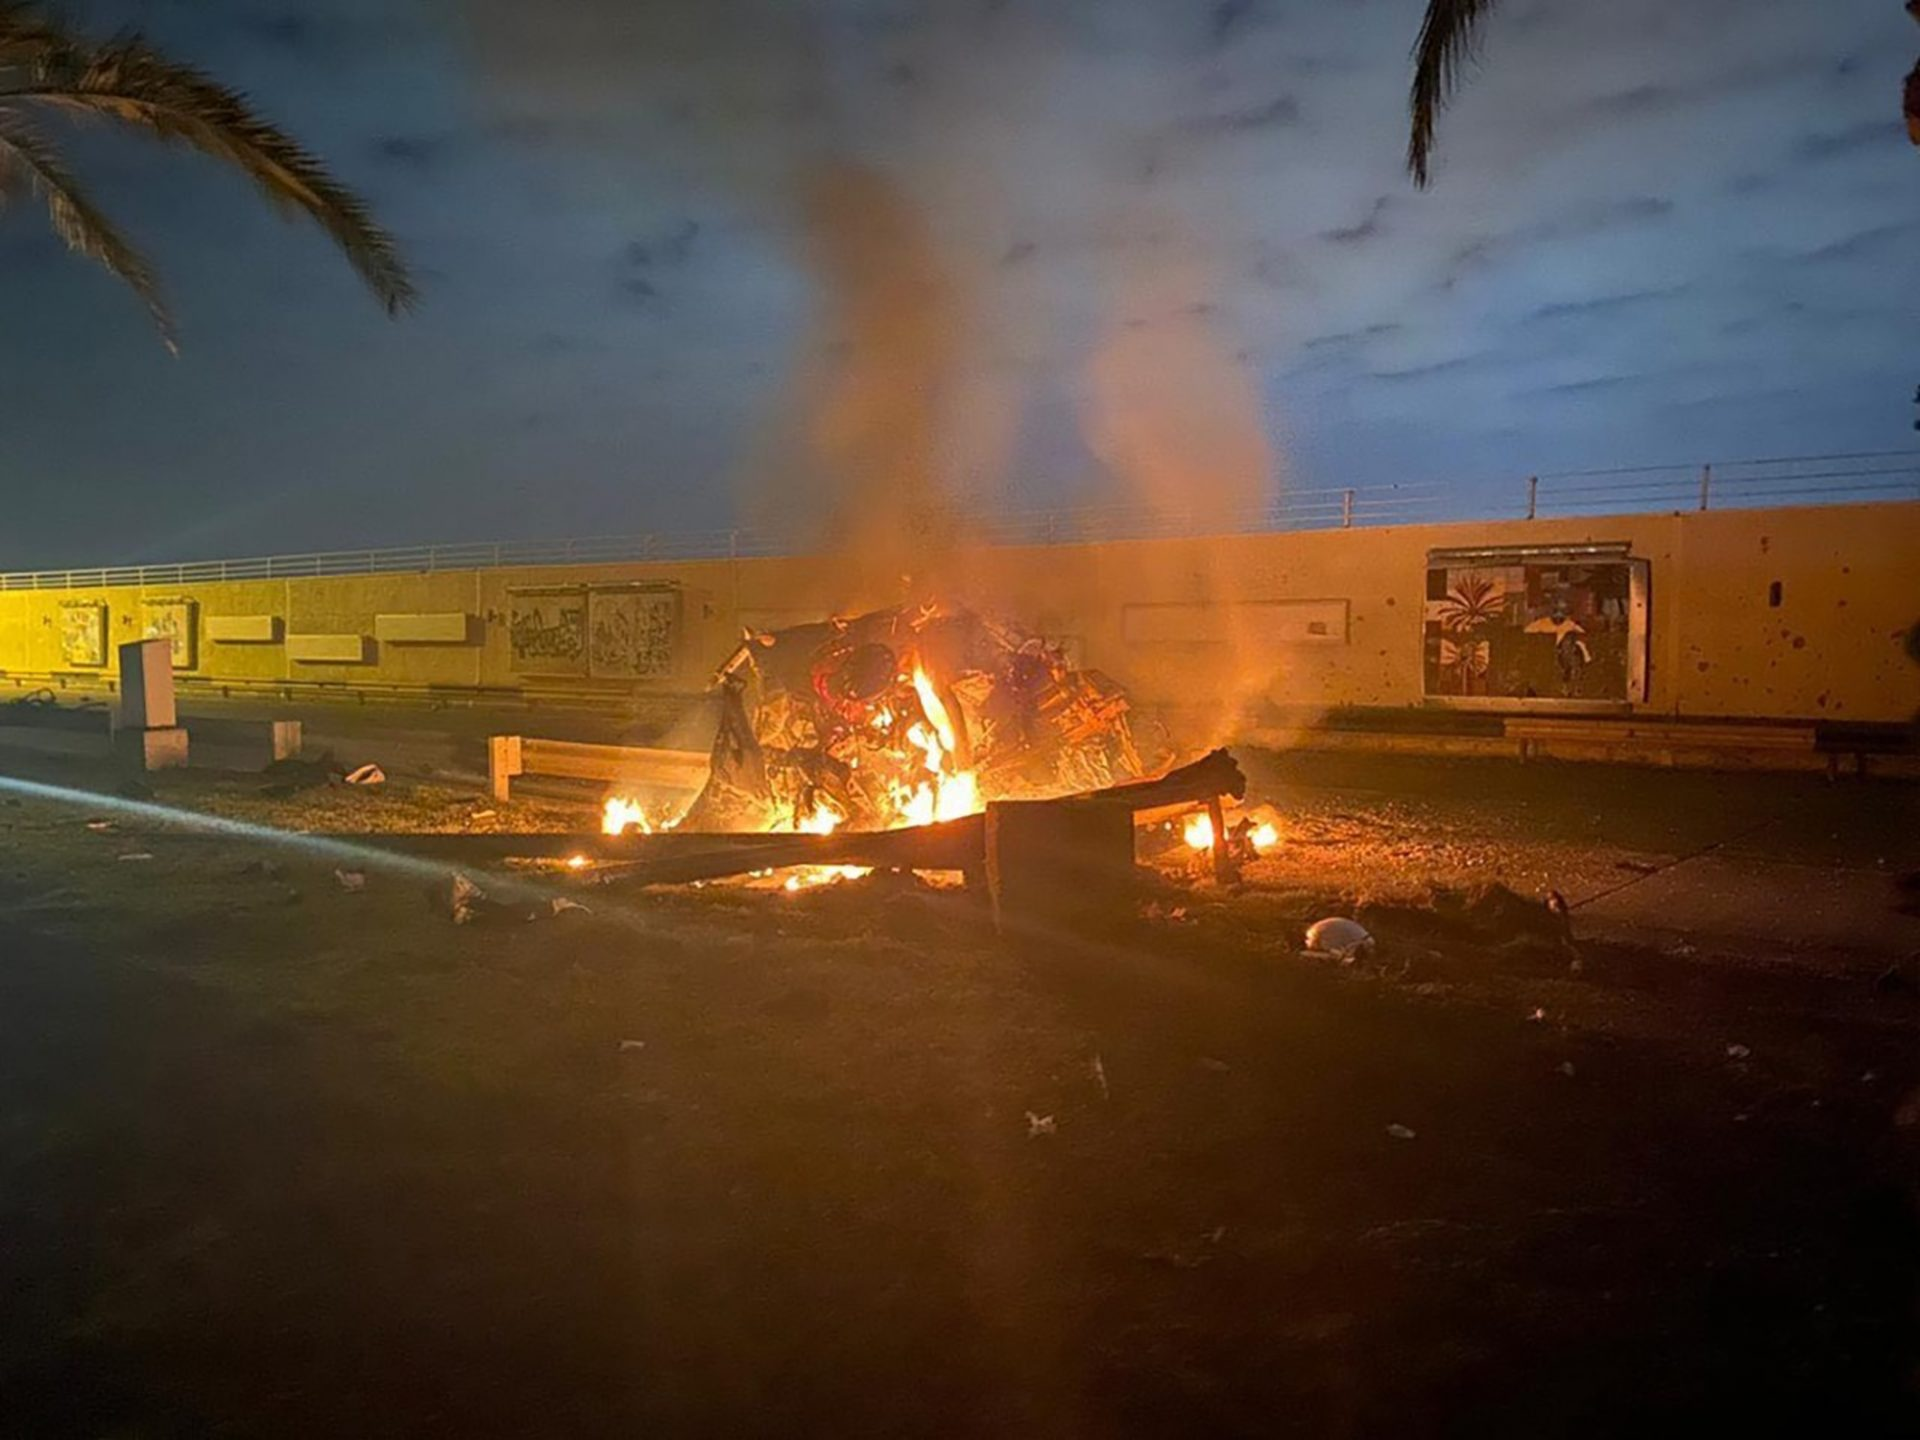 This photo released by the Iraqi Prime Minister Press Office shows a burning vehicle at the Baghdad International Airport following an airstrike in Baghdad, Iraq, early Friday, Jan. 3, 2020. The Pentagon said Thursday that the U.S. military has killed Gen. Qassem Soleimani, the head of Iran's elite Quds Force, at the direction of President Donald Trump.